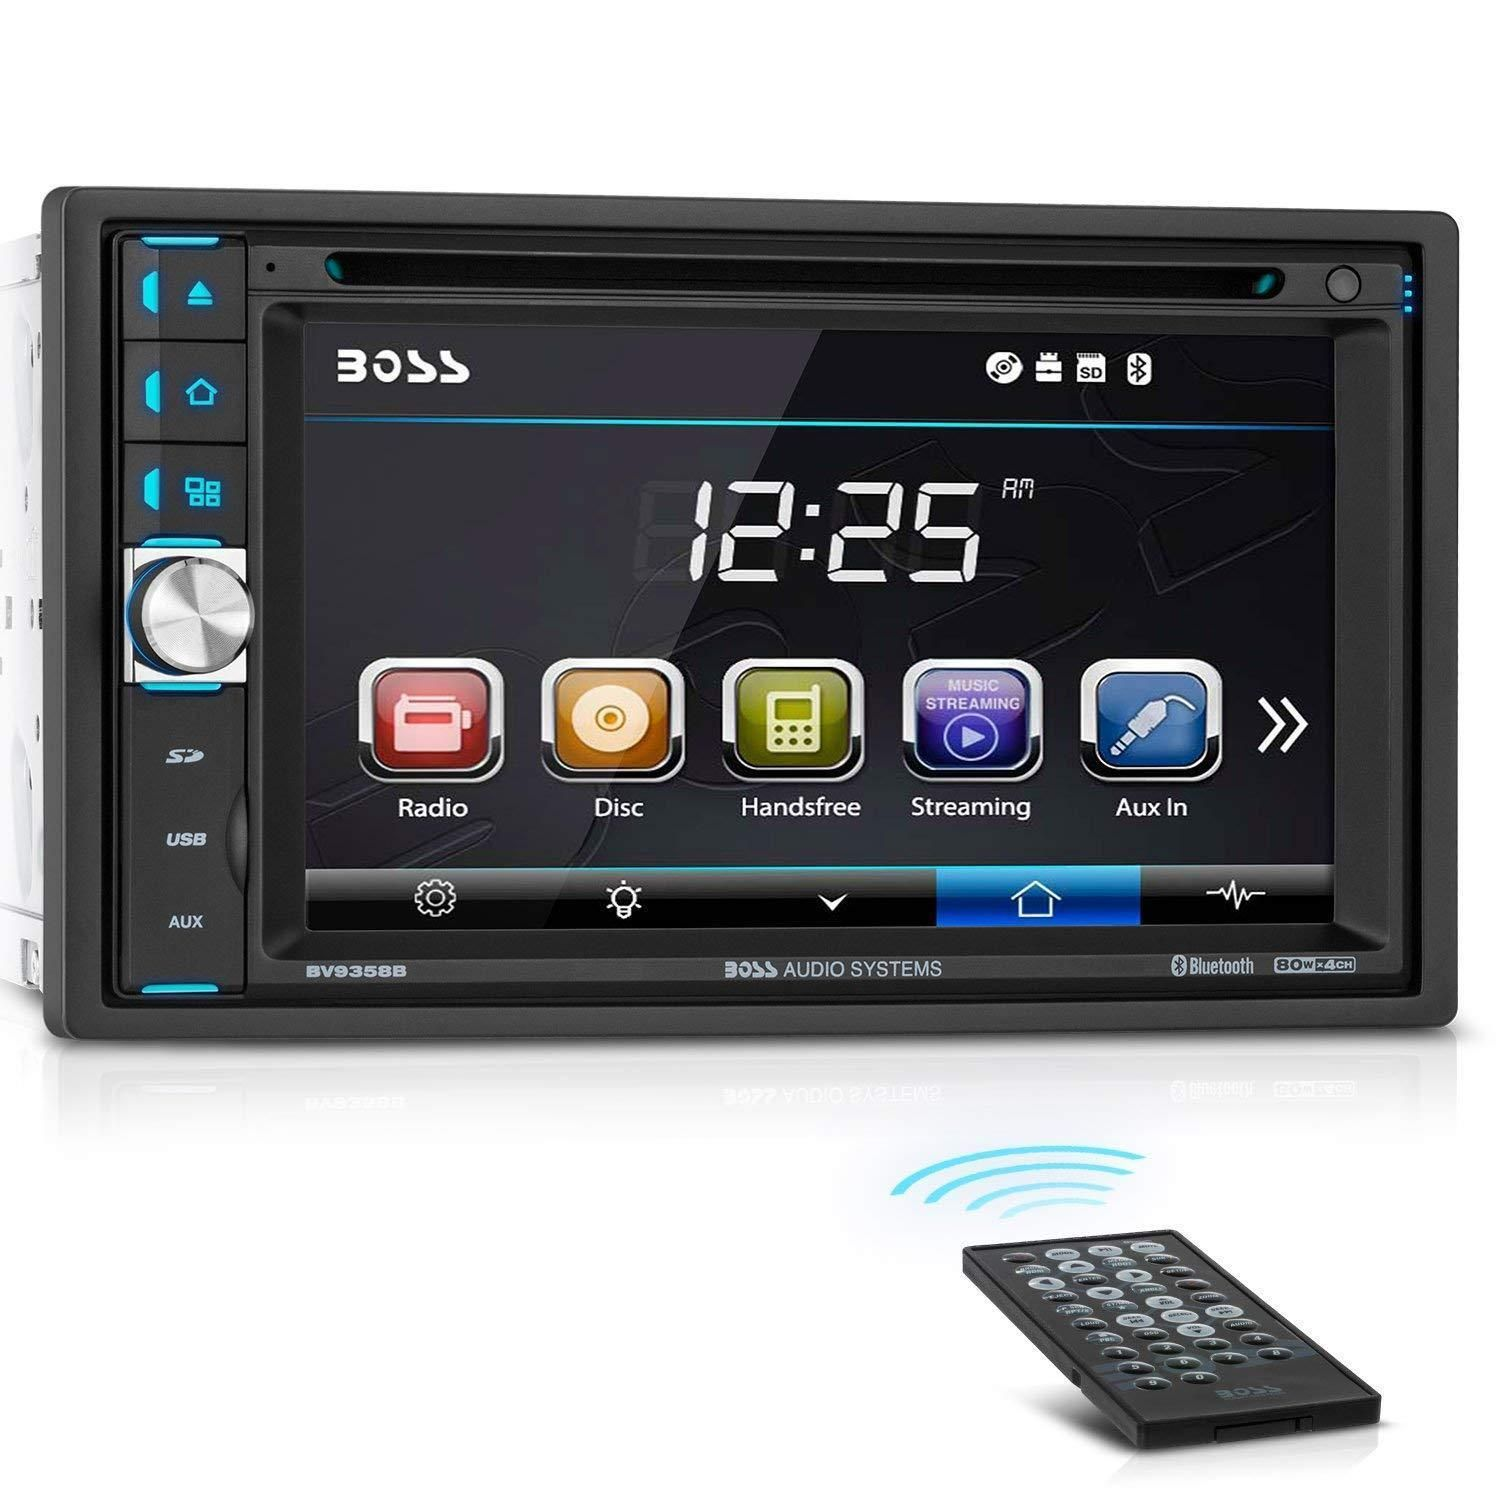 """NEW KENWOOD DDX25BT 6.2"""" DOUBLE DIN TOUCHSCREEN CAR STEREO"""